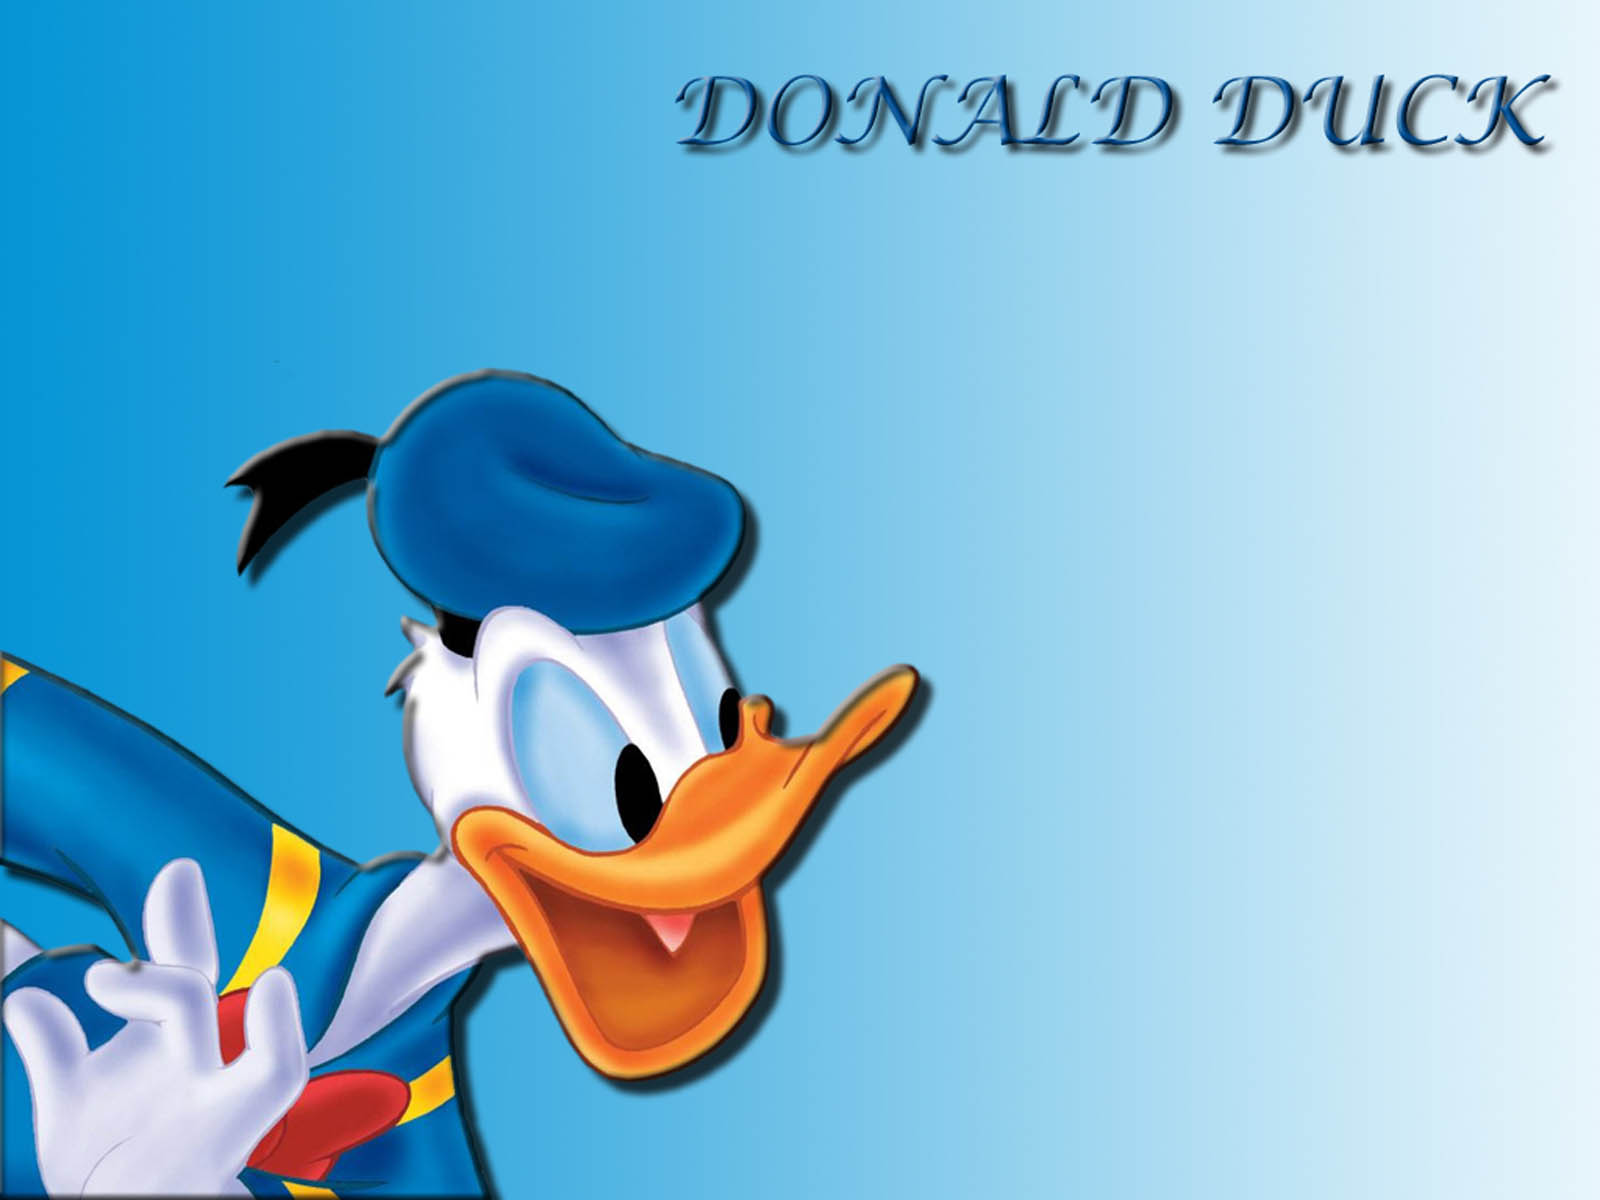 Donald duck hd images - photo#36